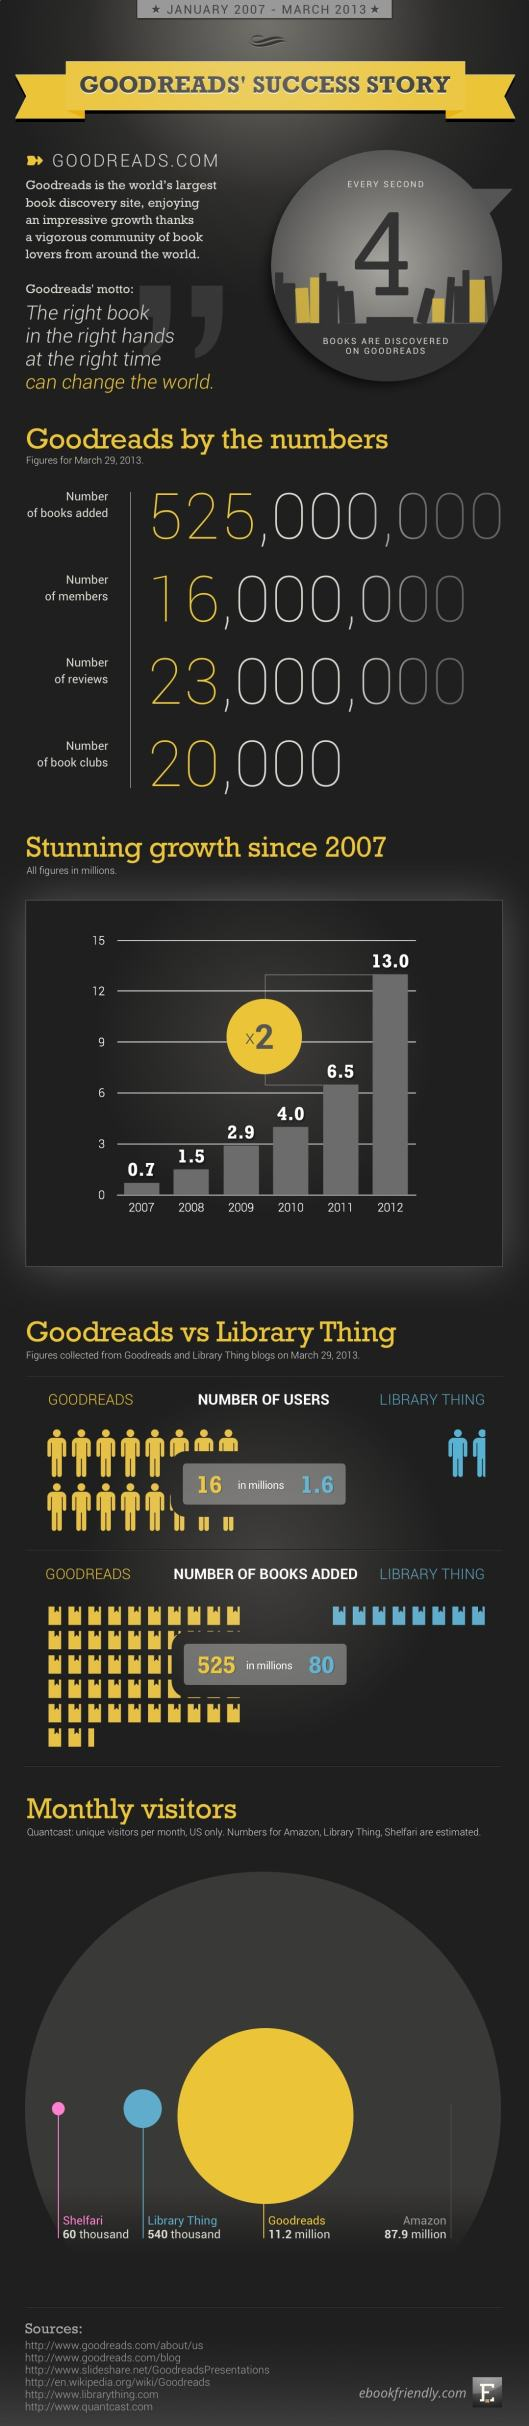 Goodreads-success-story-infographic[1]